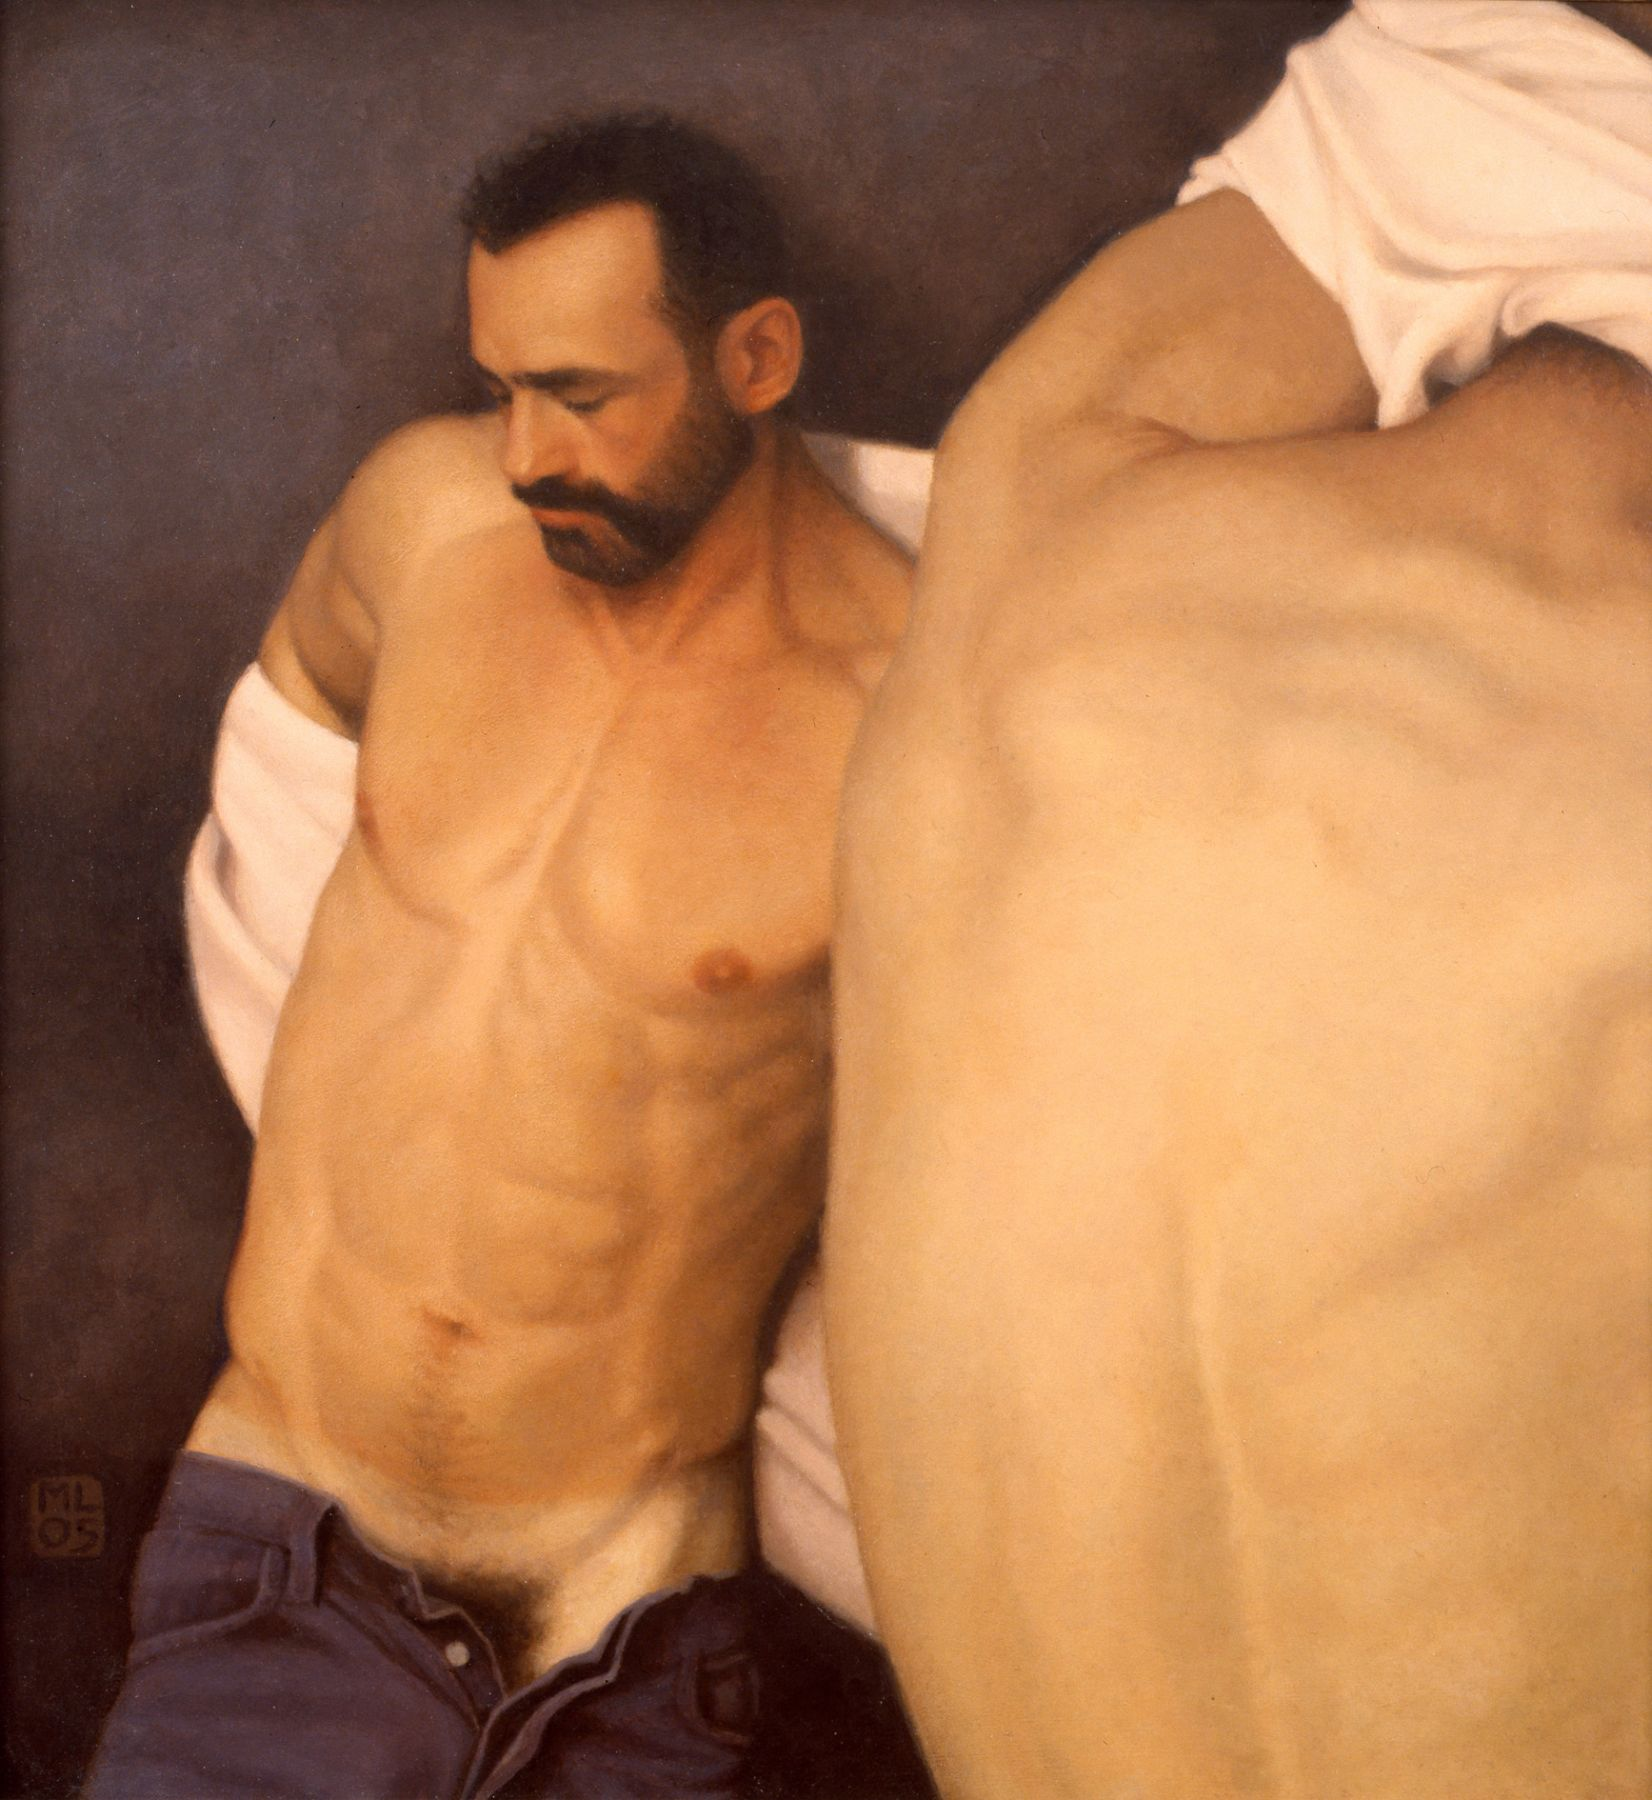 Michael Leonard, Changing Room (SOLD), 2005, alkyd-oil on masonite, 23 x 21 1/2 inches